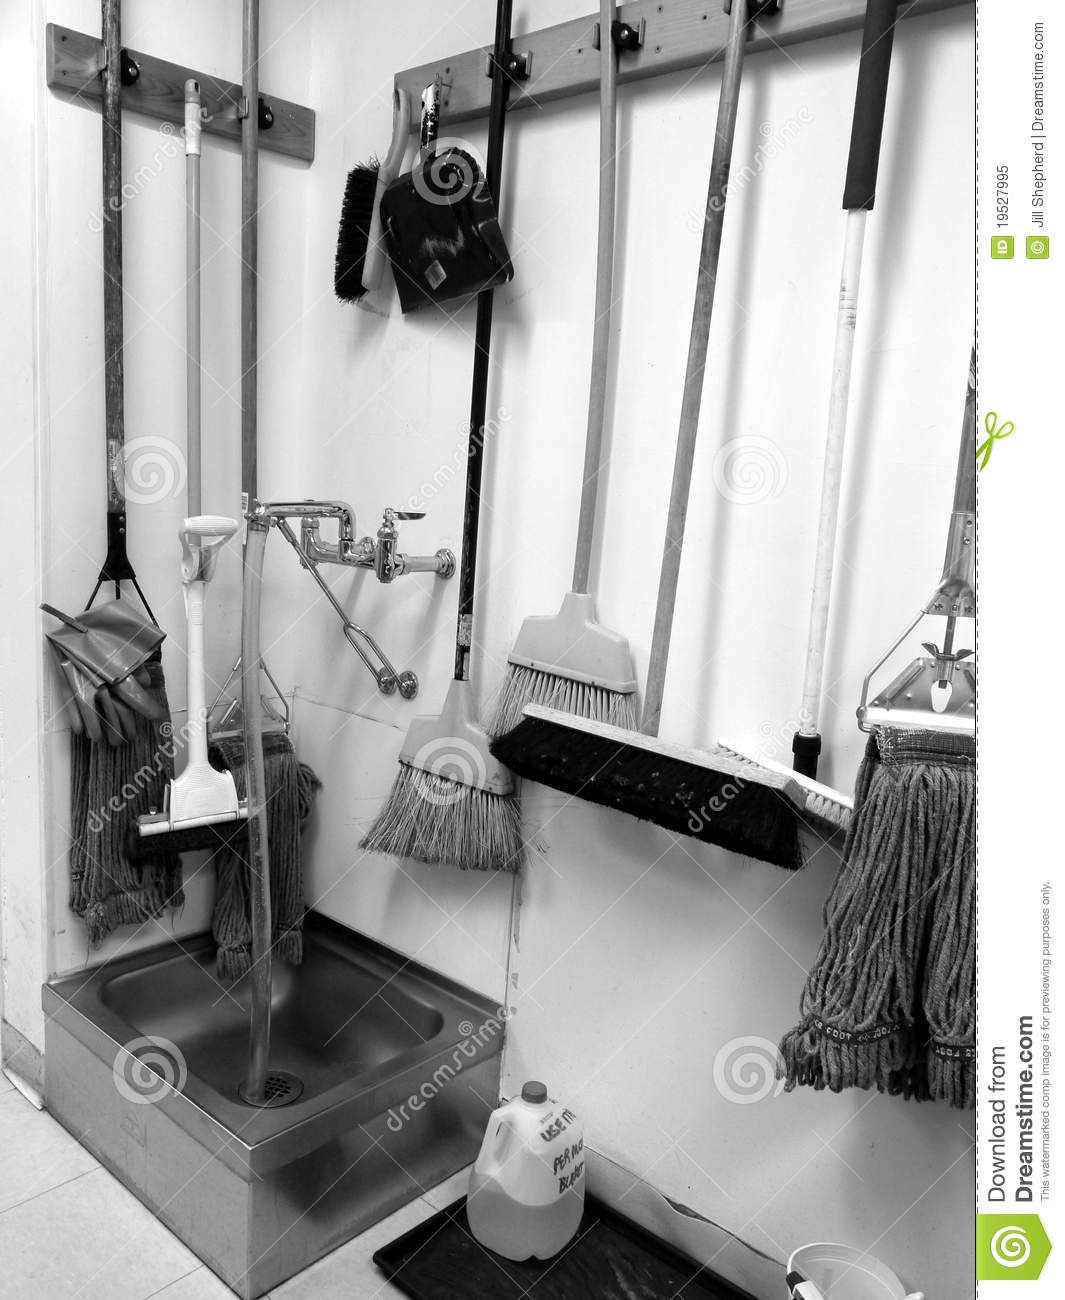 Commercial Cleaning: Brooms, Mops, Sink Stock Image - Image of ...